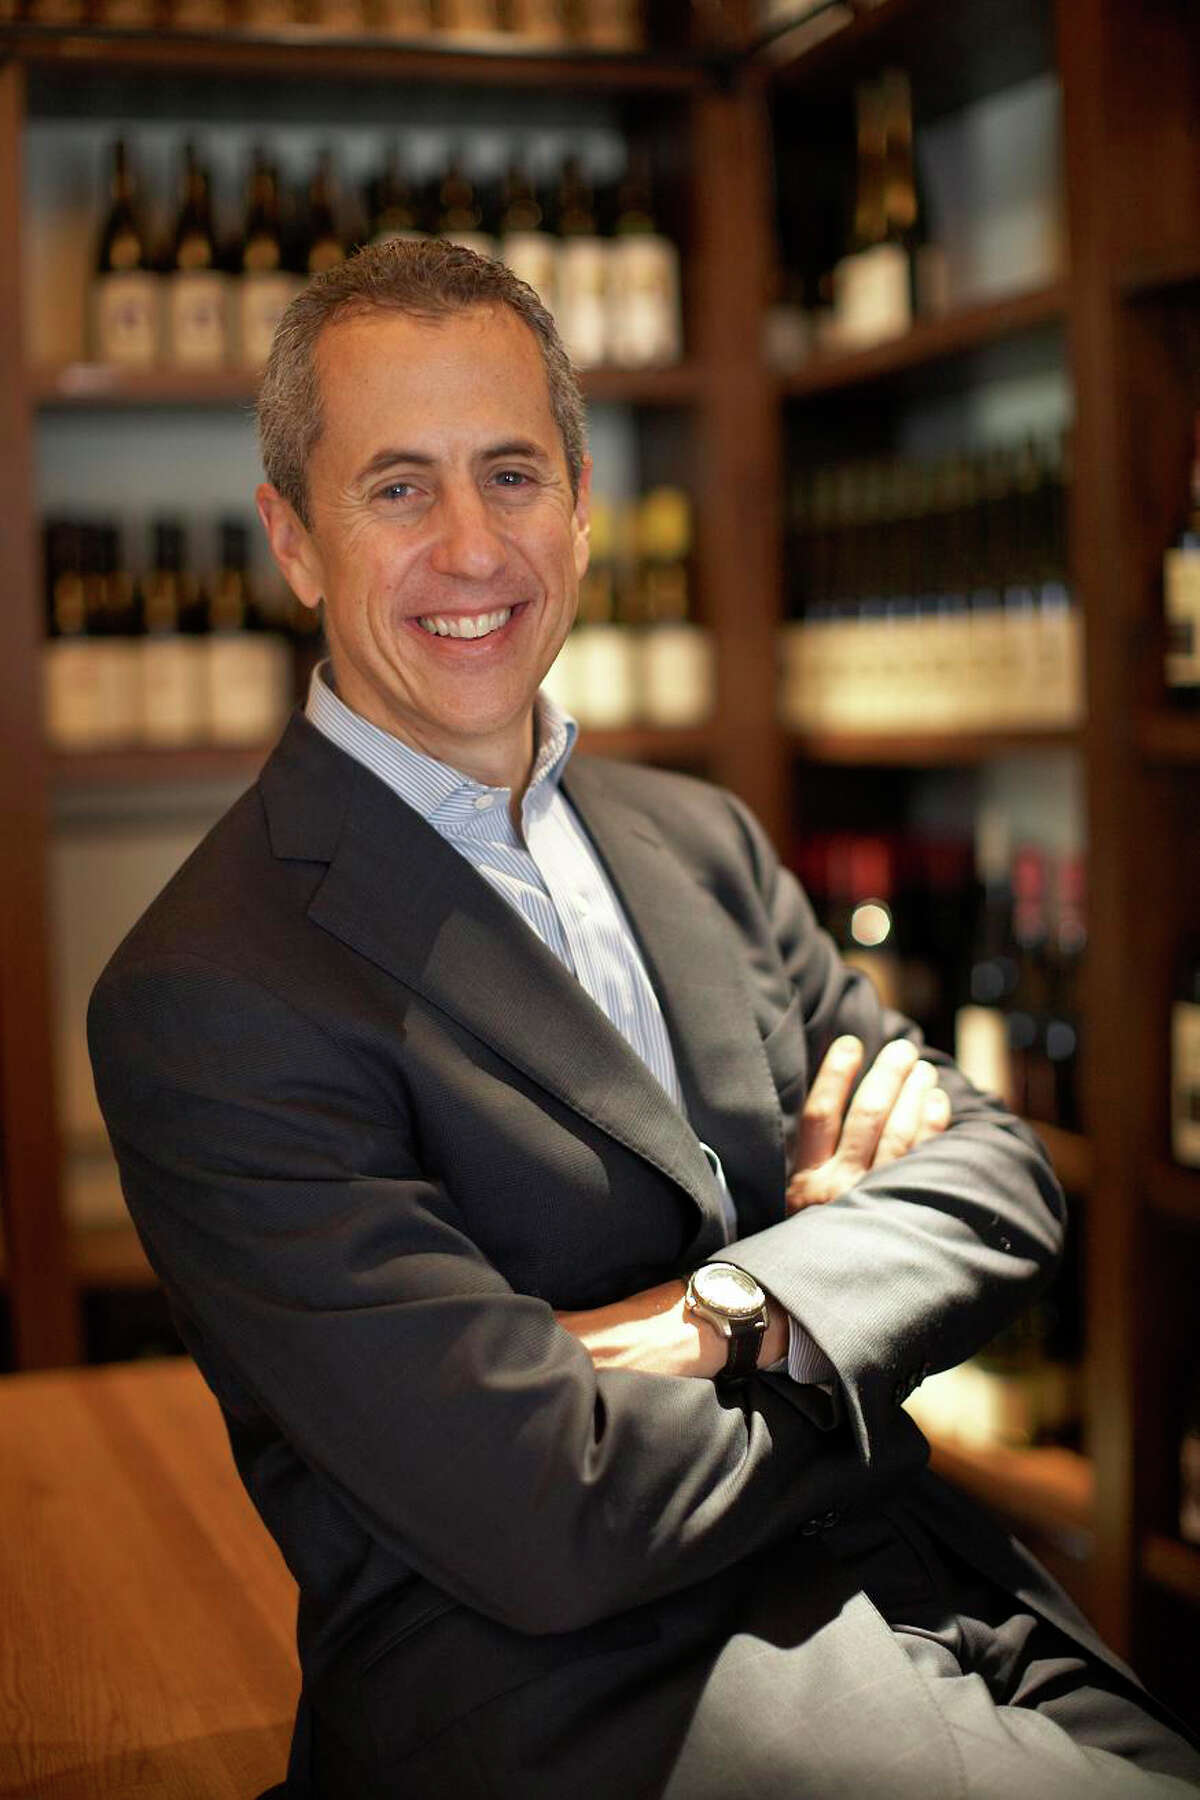 Danny Meyer's restaurant empire runs the gamut from the fine dining establishments Union Square Cafe and Gramercy Tavern in New York City to the growing Shake Shack chain.